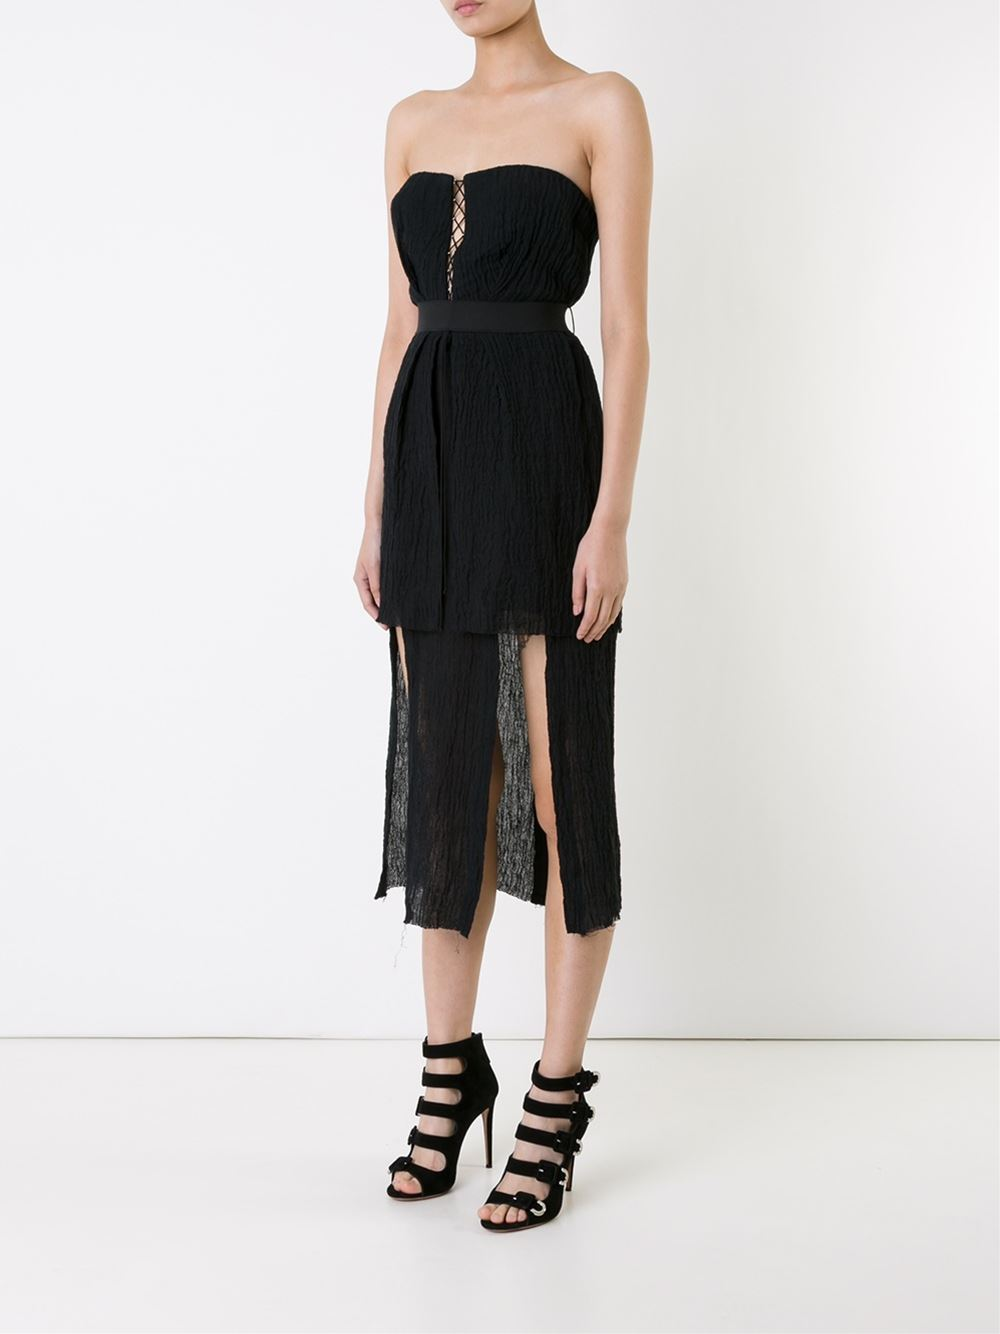 KITX   A  symmetrical Bustier Dress